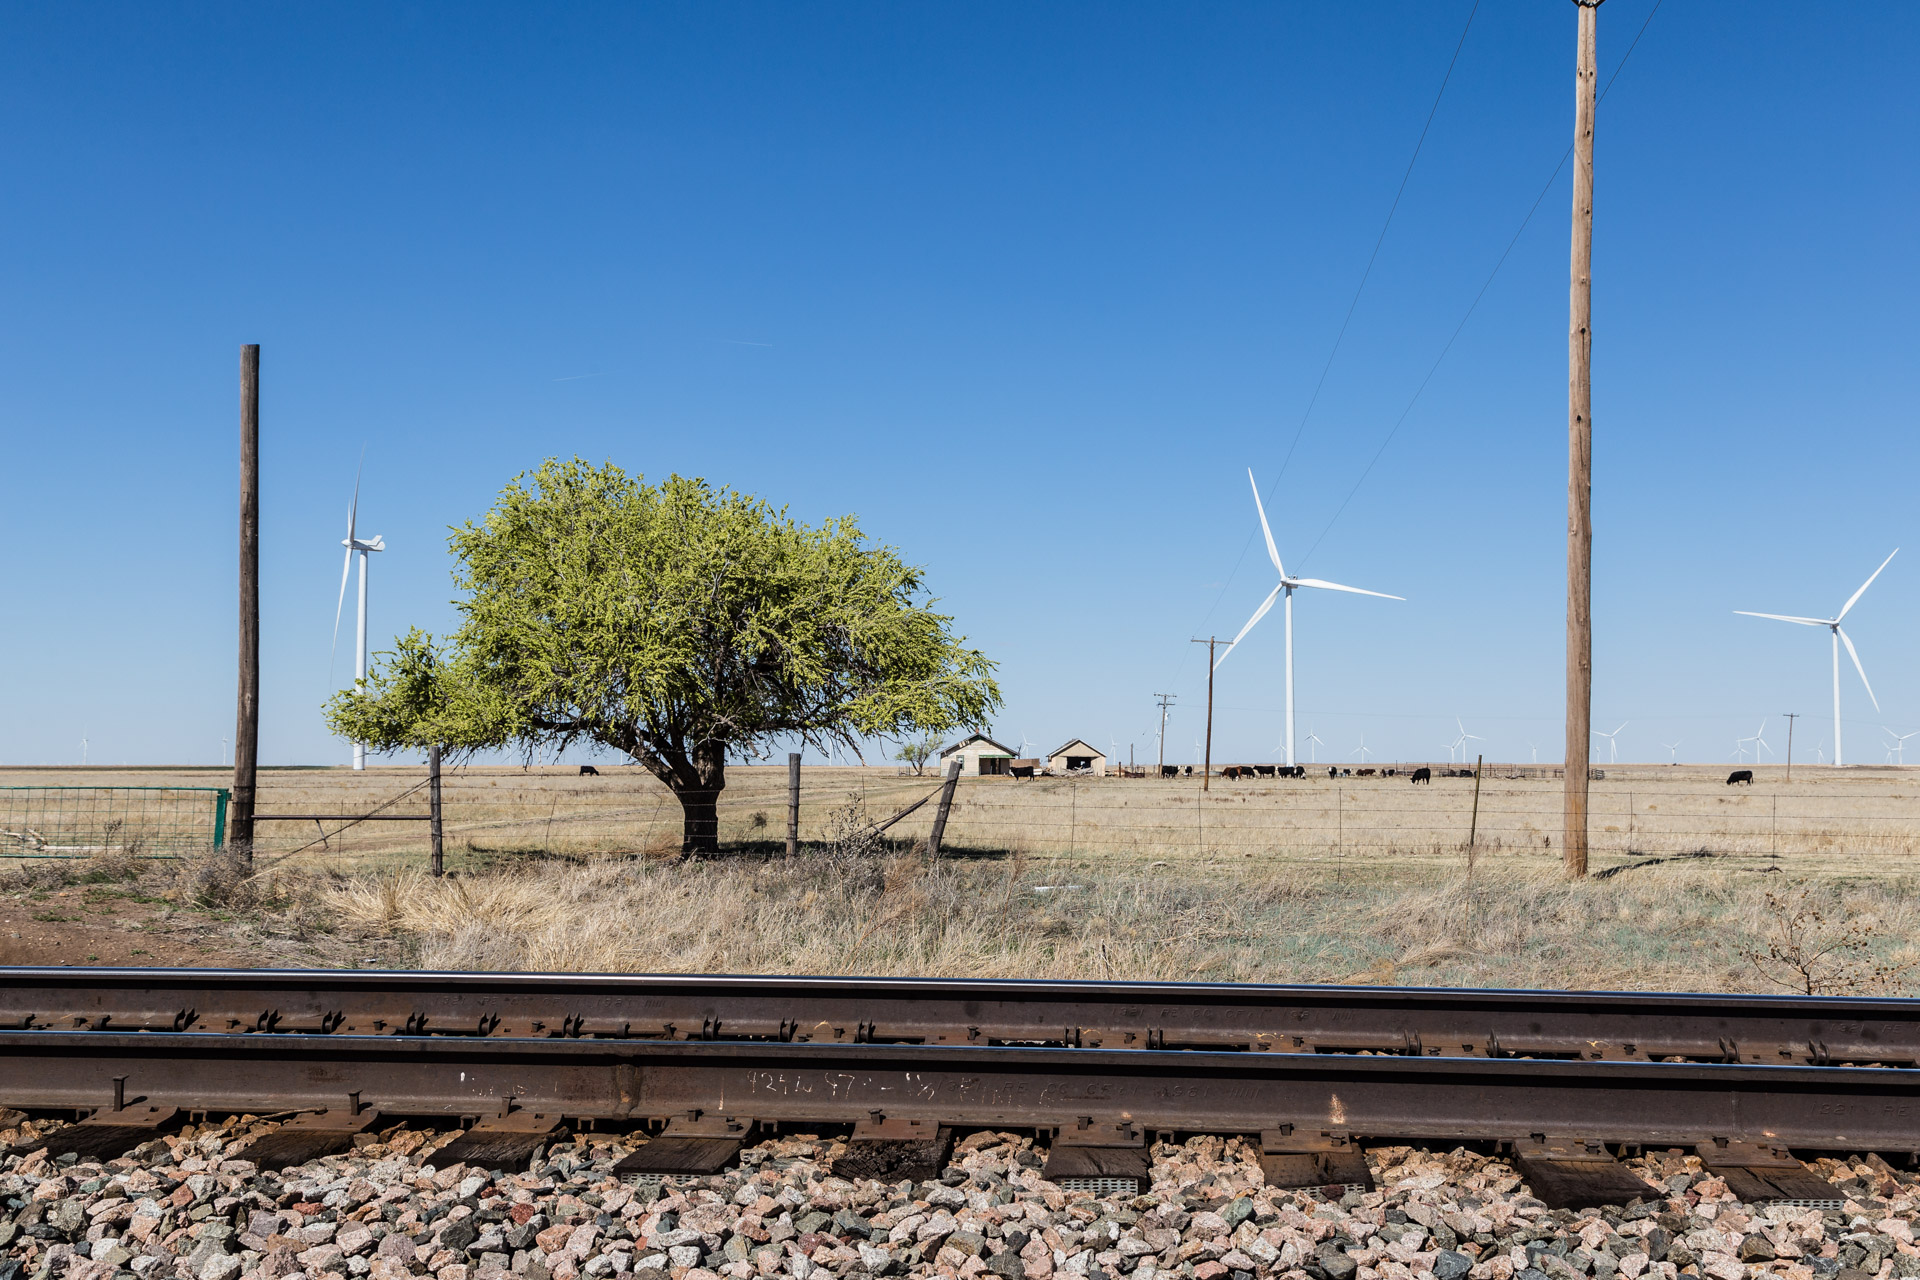 Railroad Tracks and Wind Turbines (mid tracks)